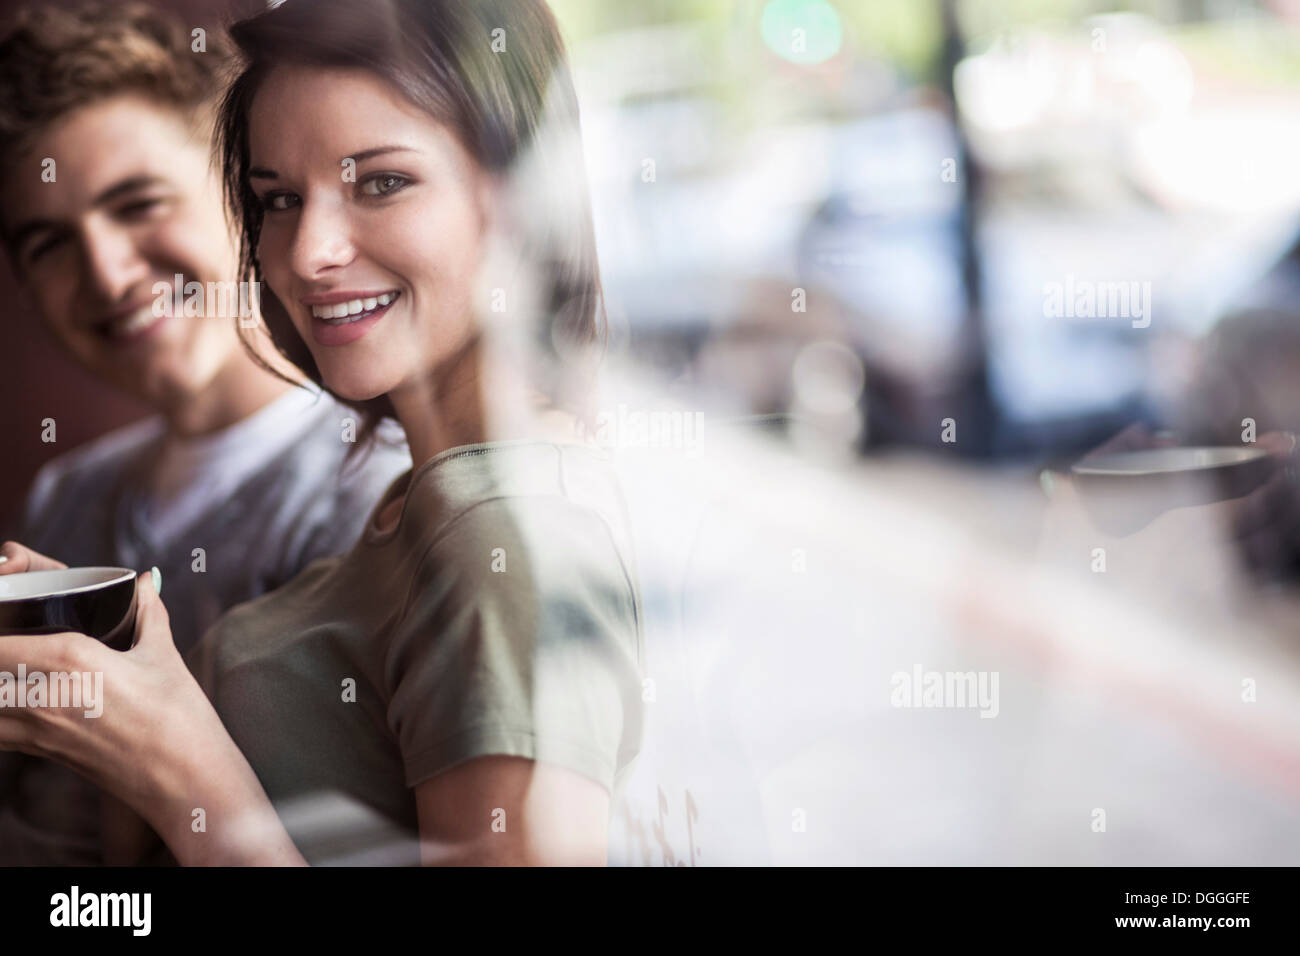 Young couple inside cafe - Stock Image